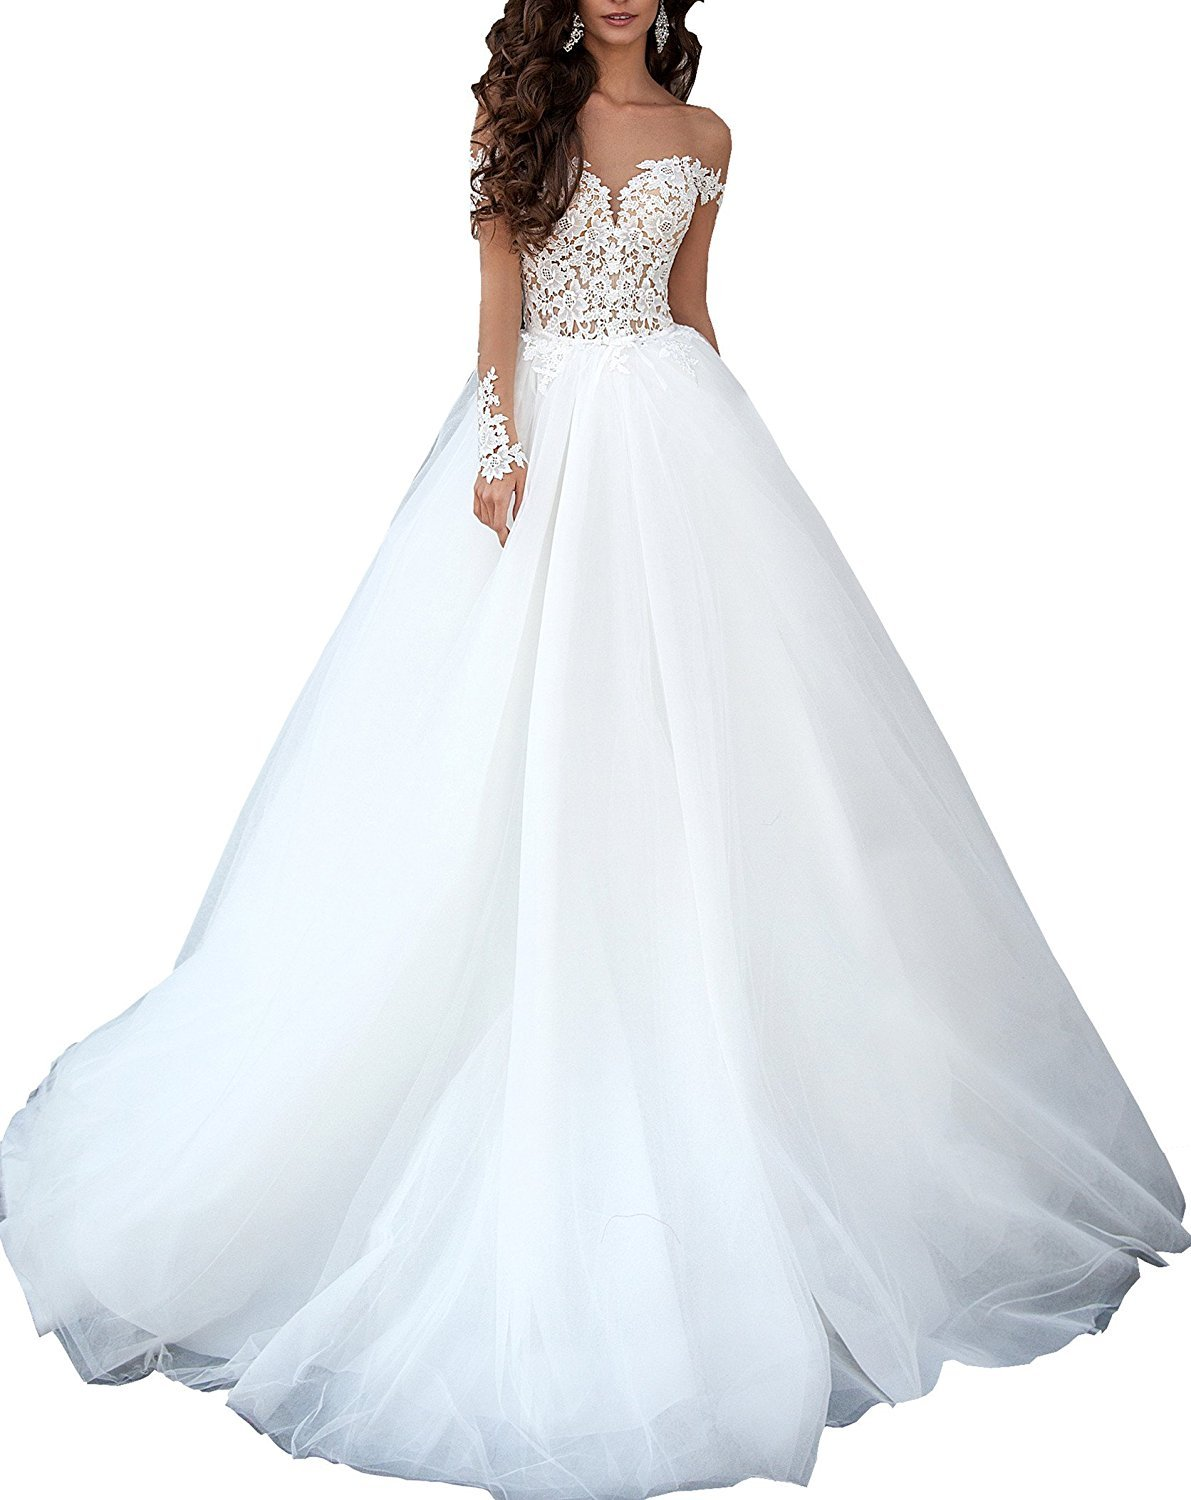 Luccatown Women' Illusion Long Sleeve Lace Top Tulle Wedding Dress Bridal Gowns White US 16